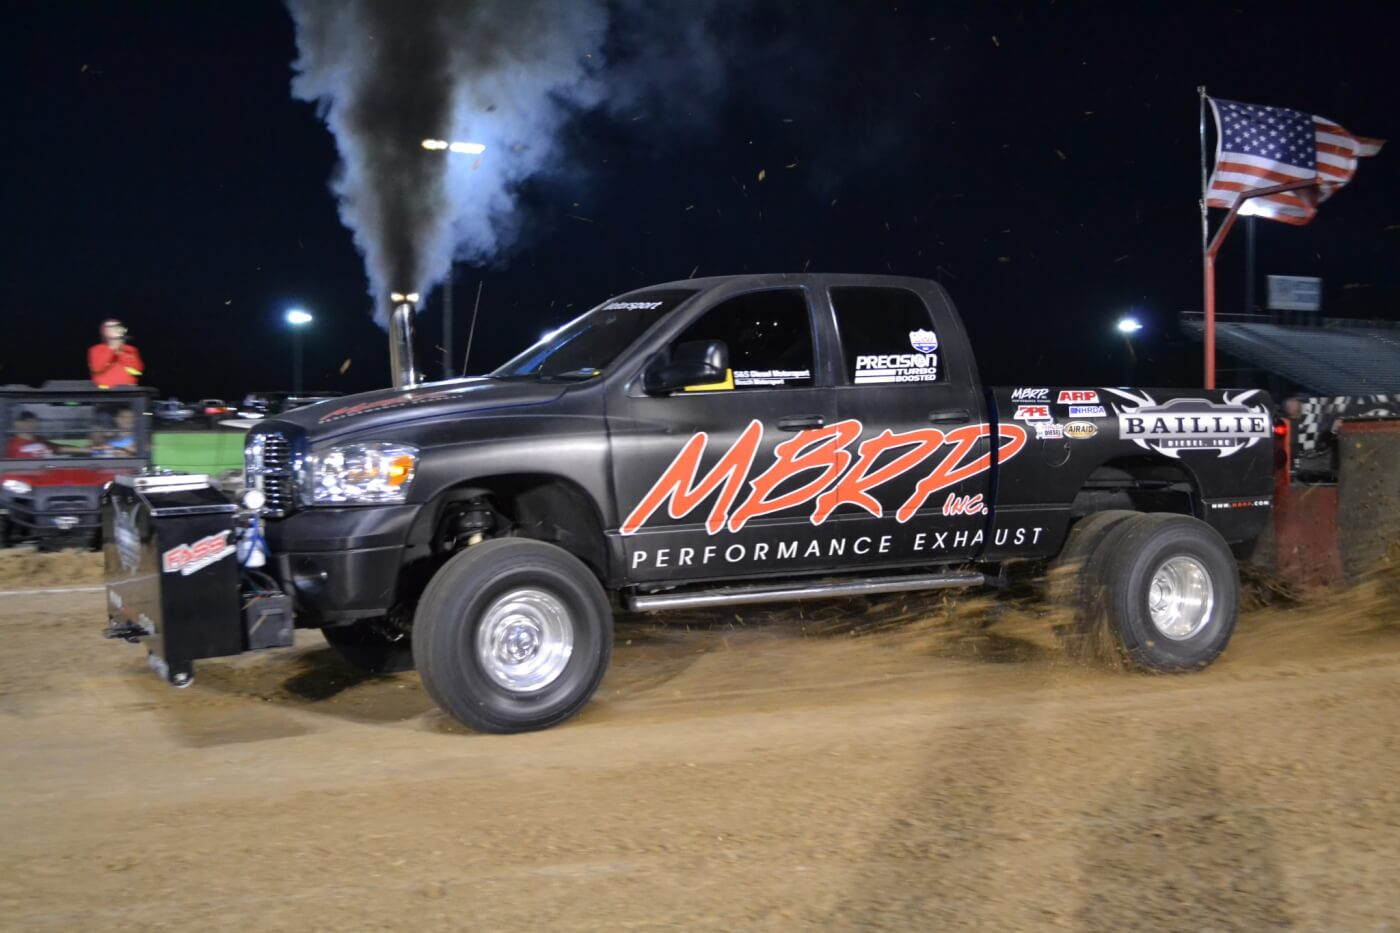 Jim Greenway's MBRP-sponsored '2007 Dodge won the 2.6 class with an excellent 344.09-foot pull, narrowly beating out his wife Amy's 338.50 second place effort.